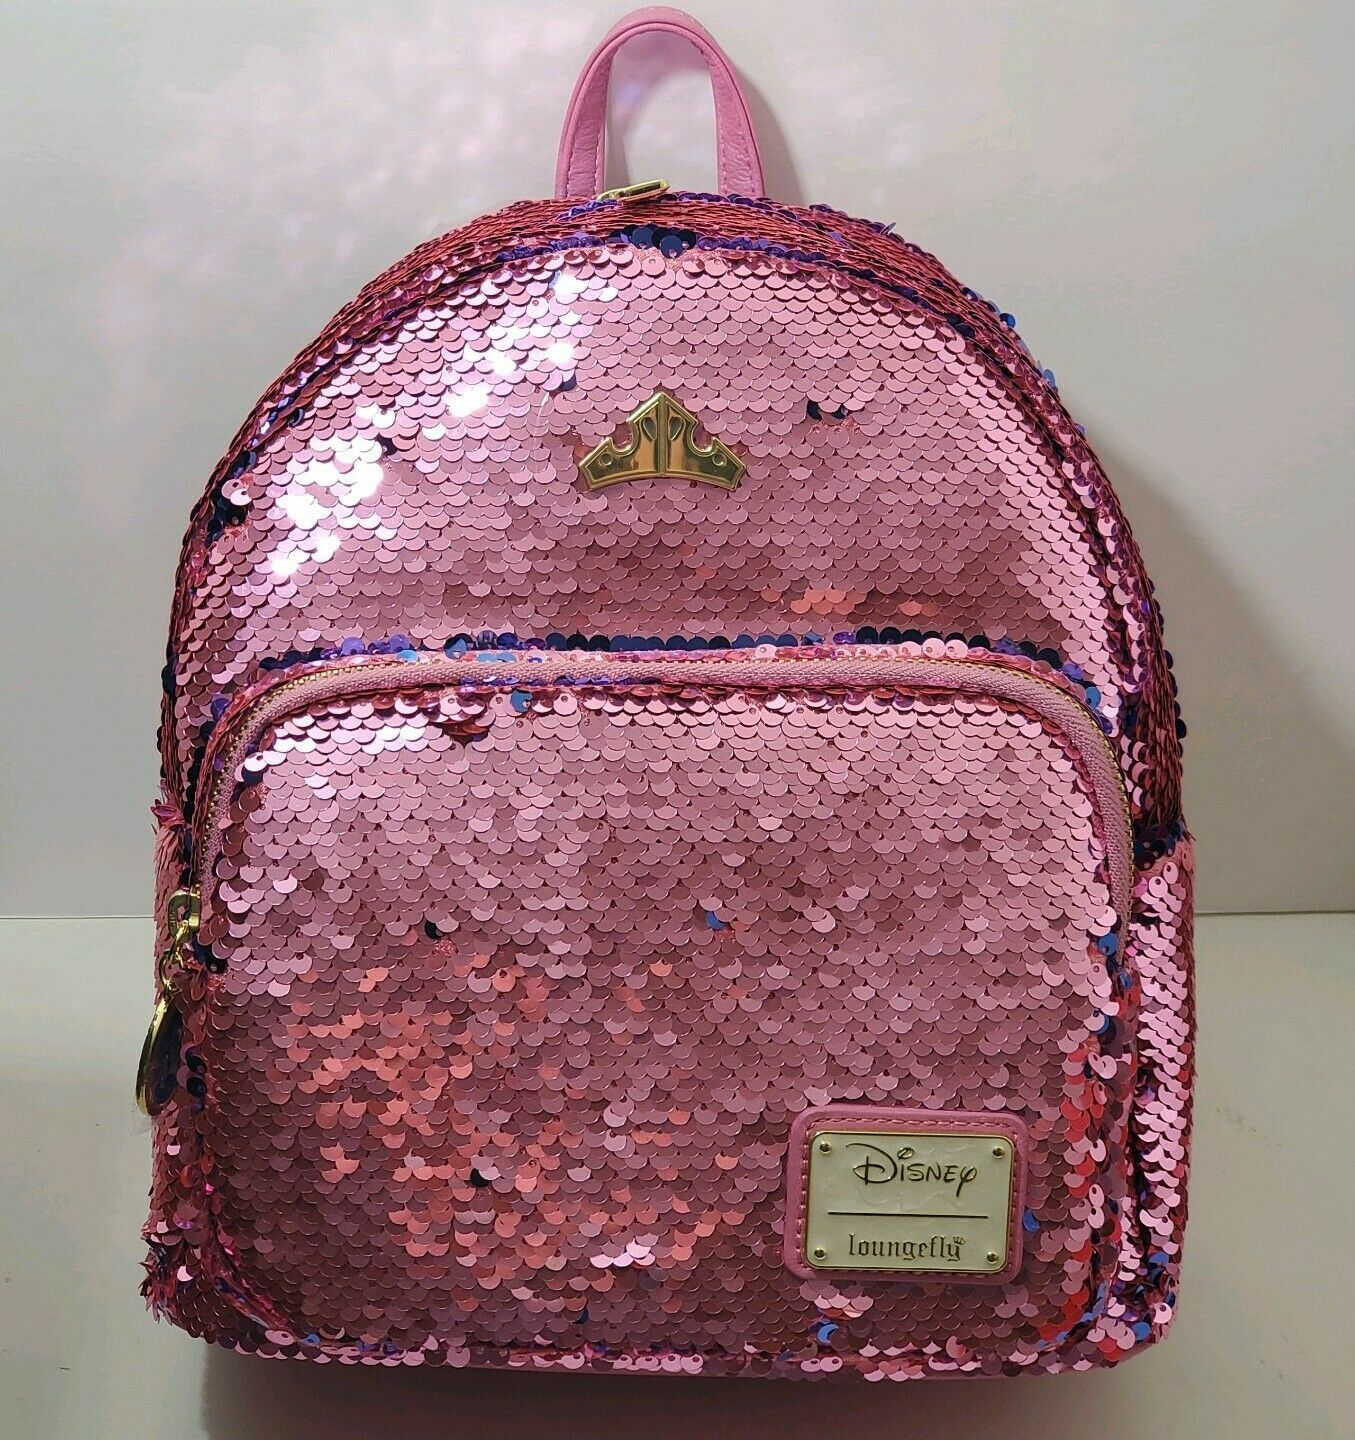 Primary image for Disney Aurora Sleeping Beauty Loungefly Mini Backpack Sequence Pink Blue